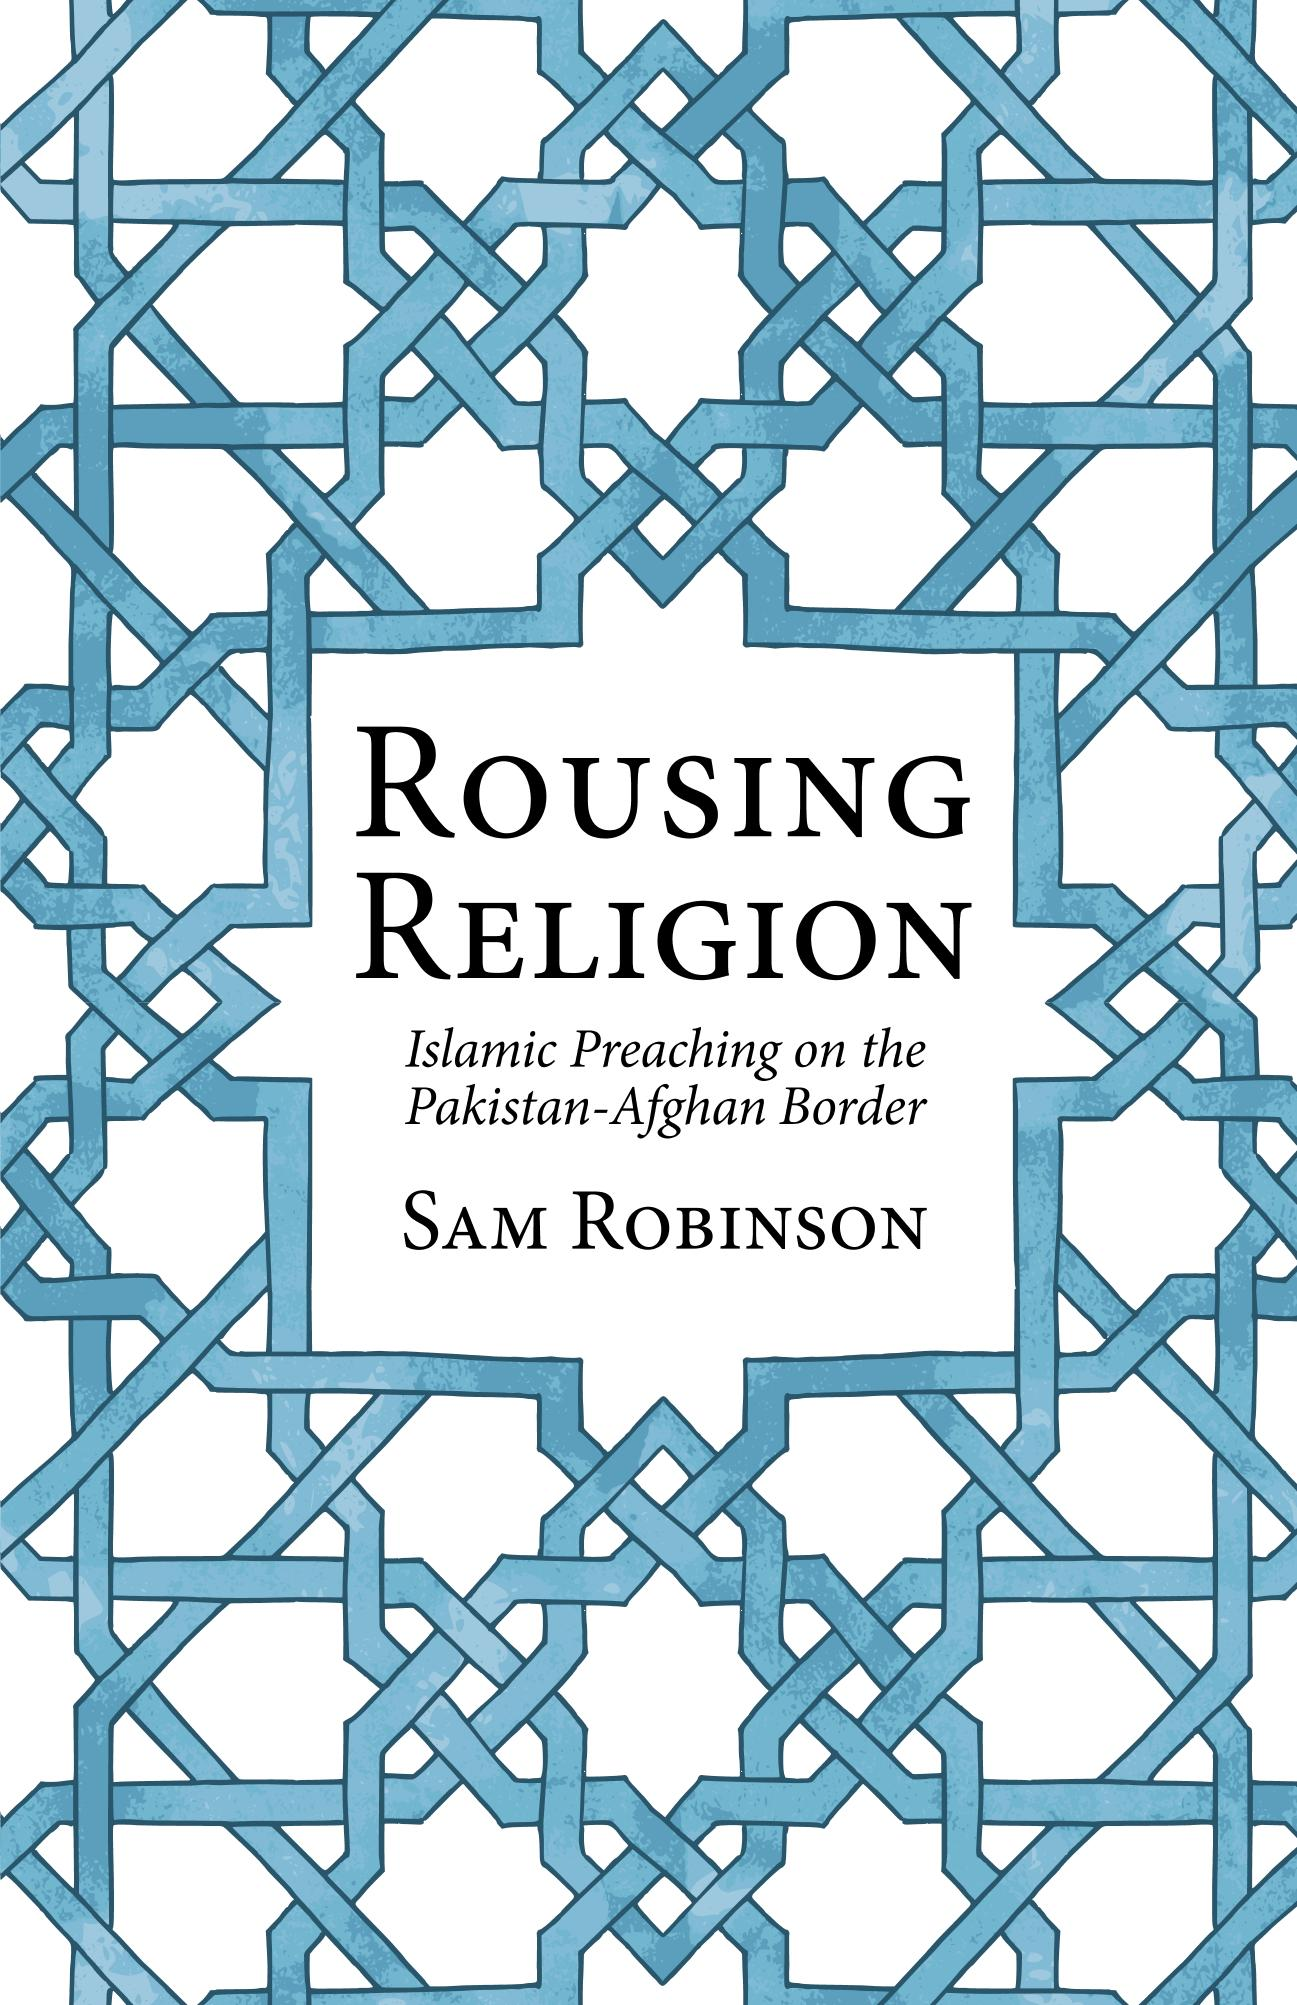 Rousing_Religion_Cover_for_Kindle.jpg